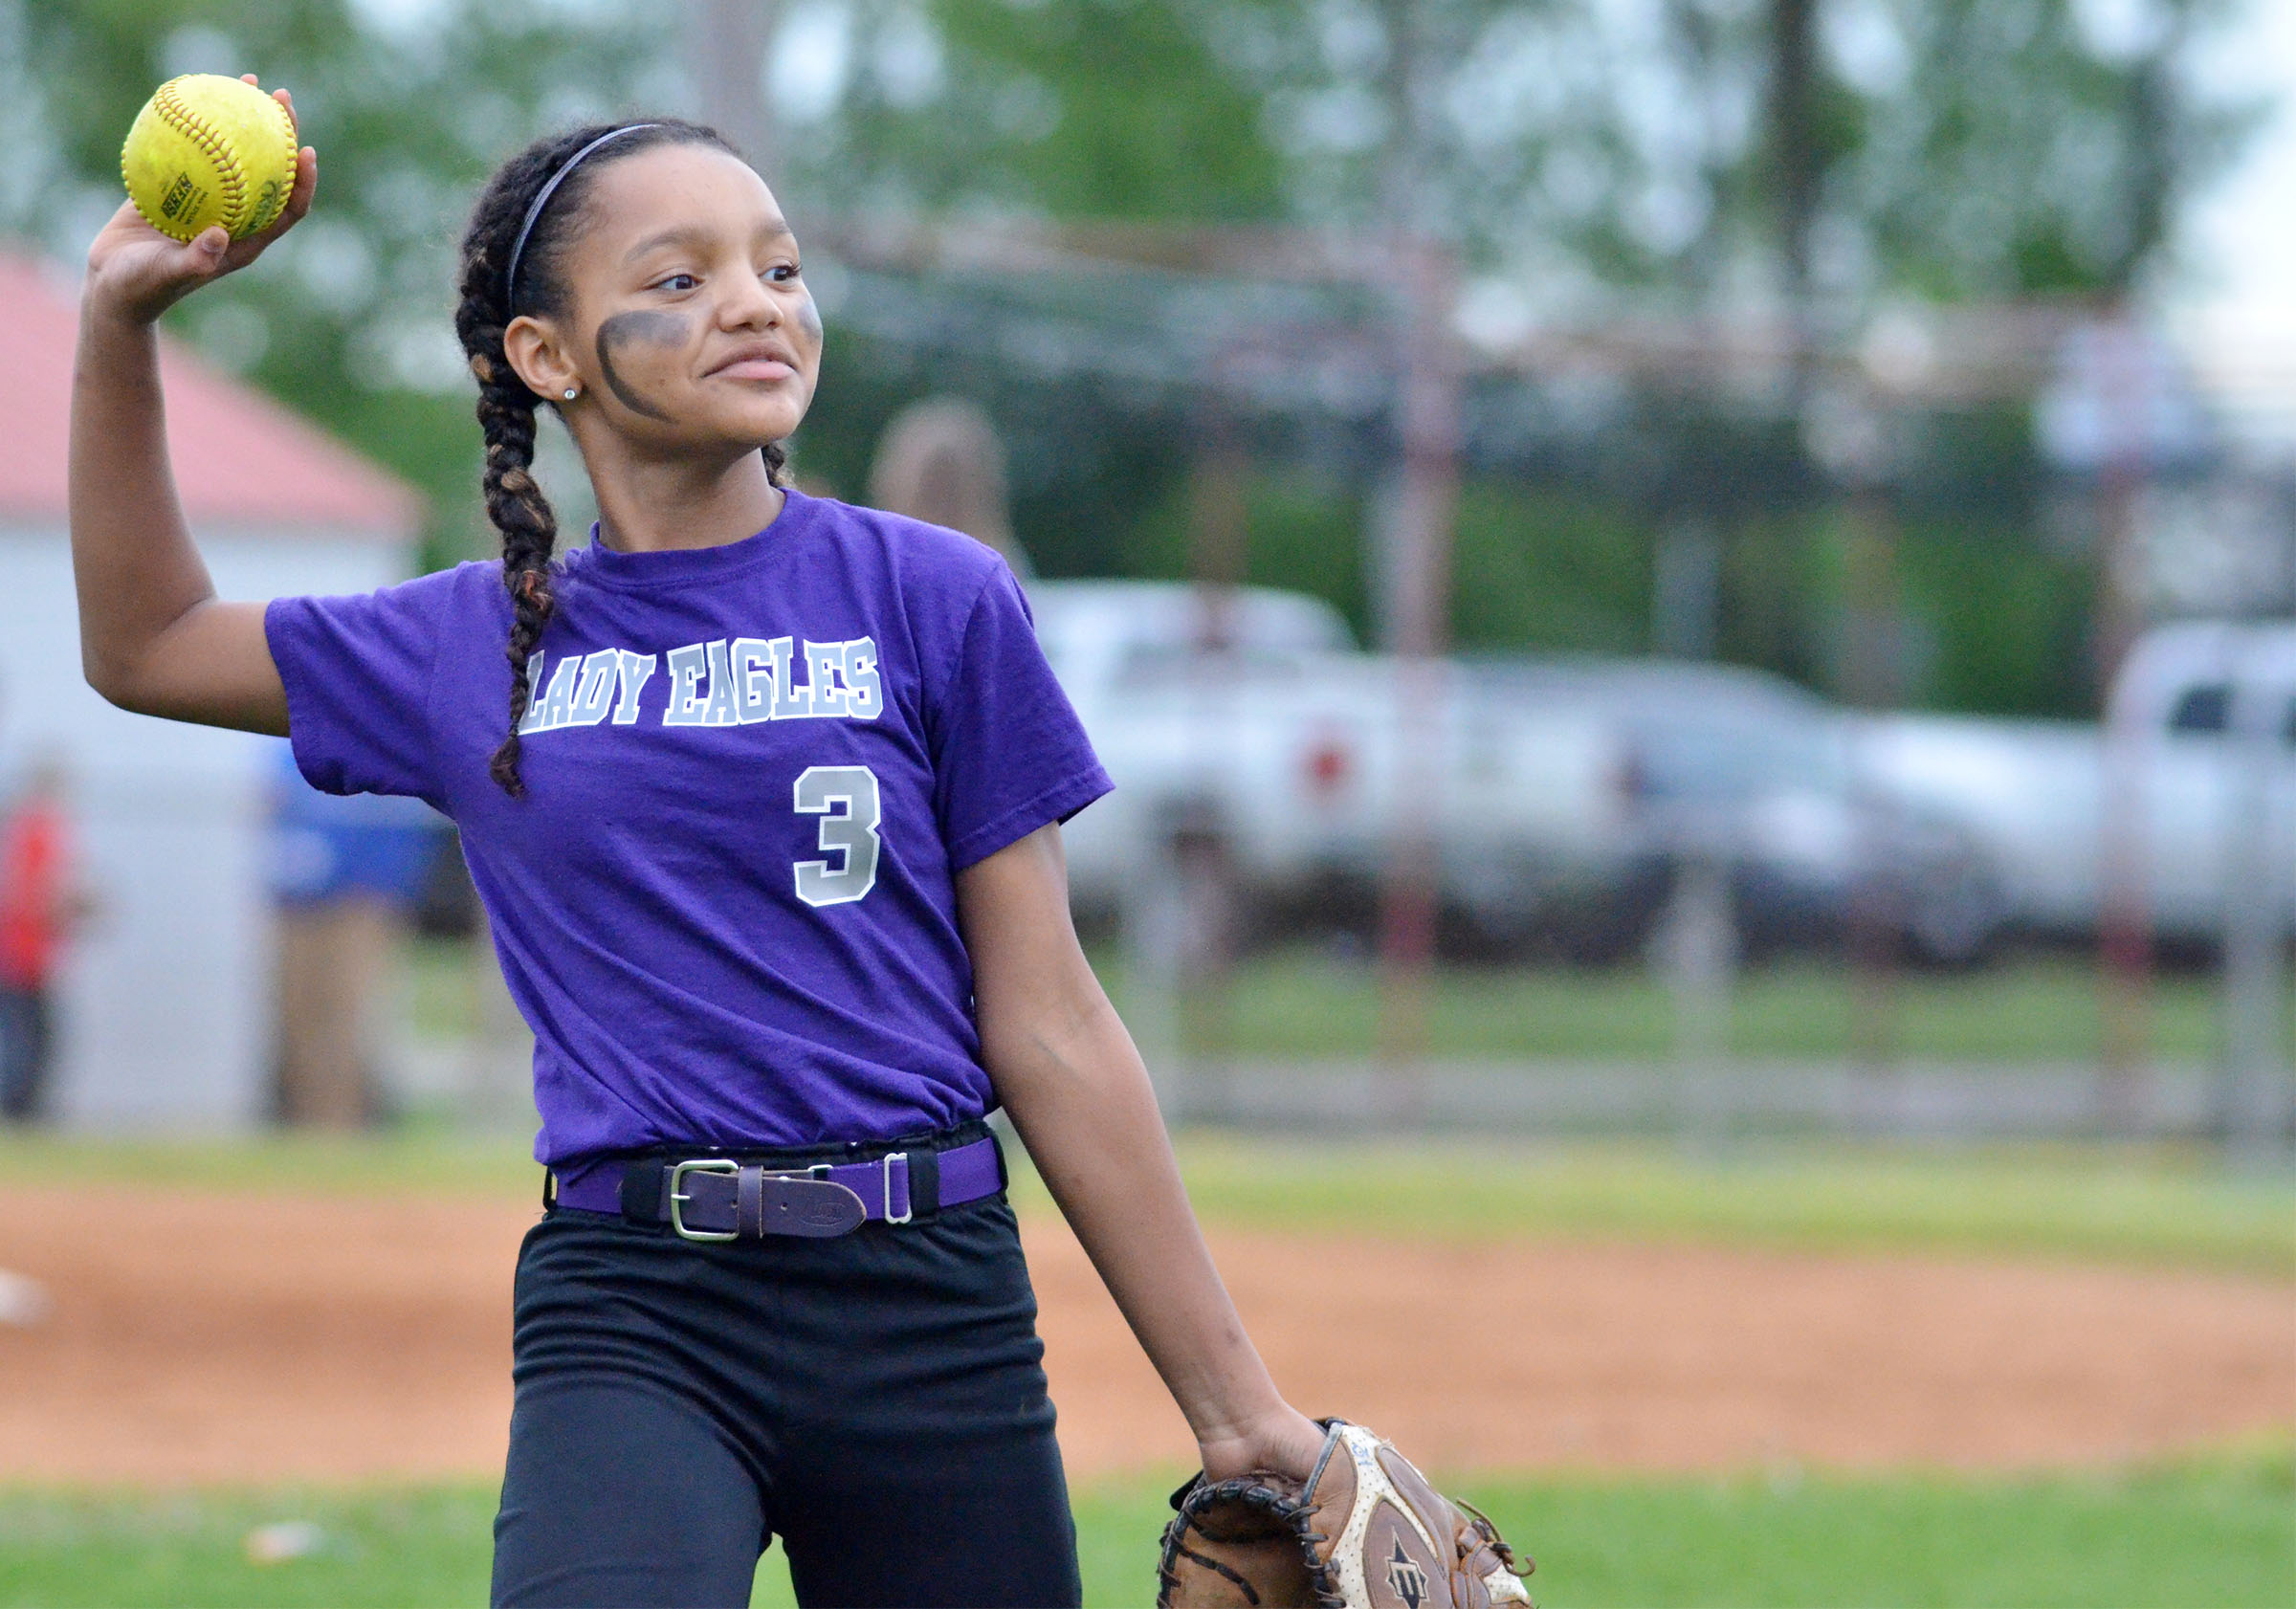 CMS seventh-grader Alexis Thomas throws.